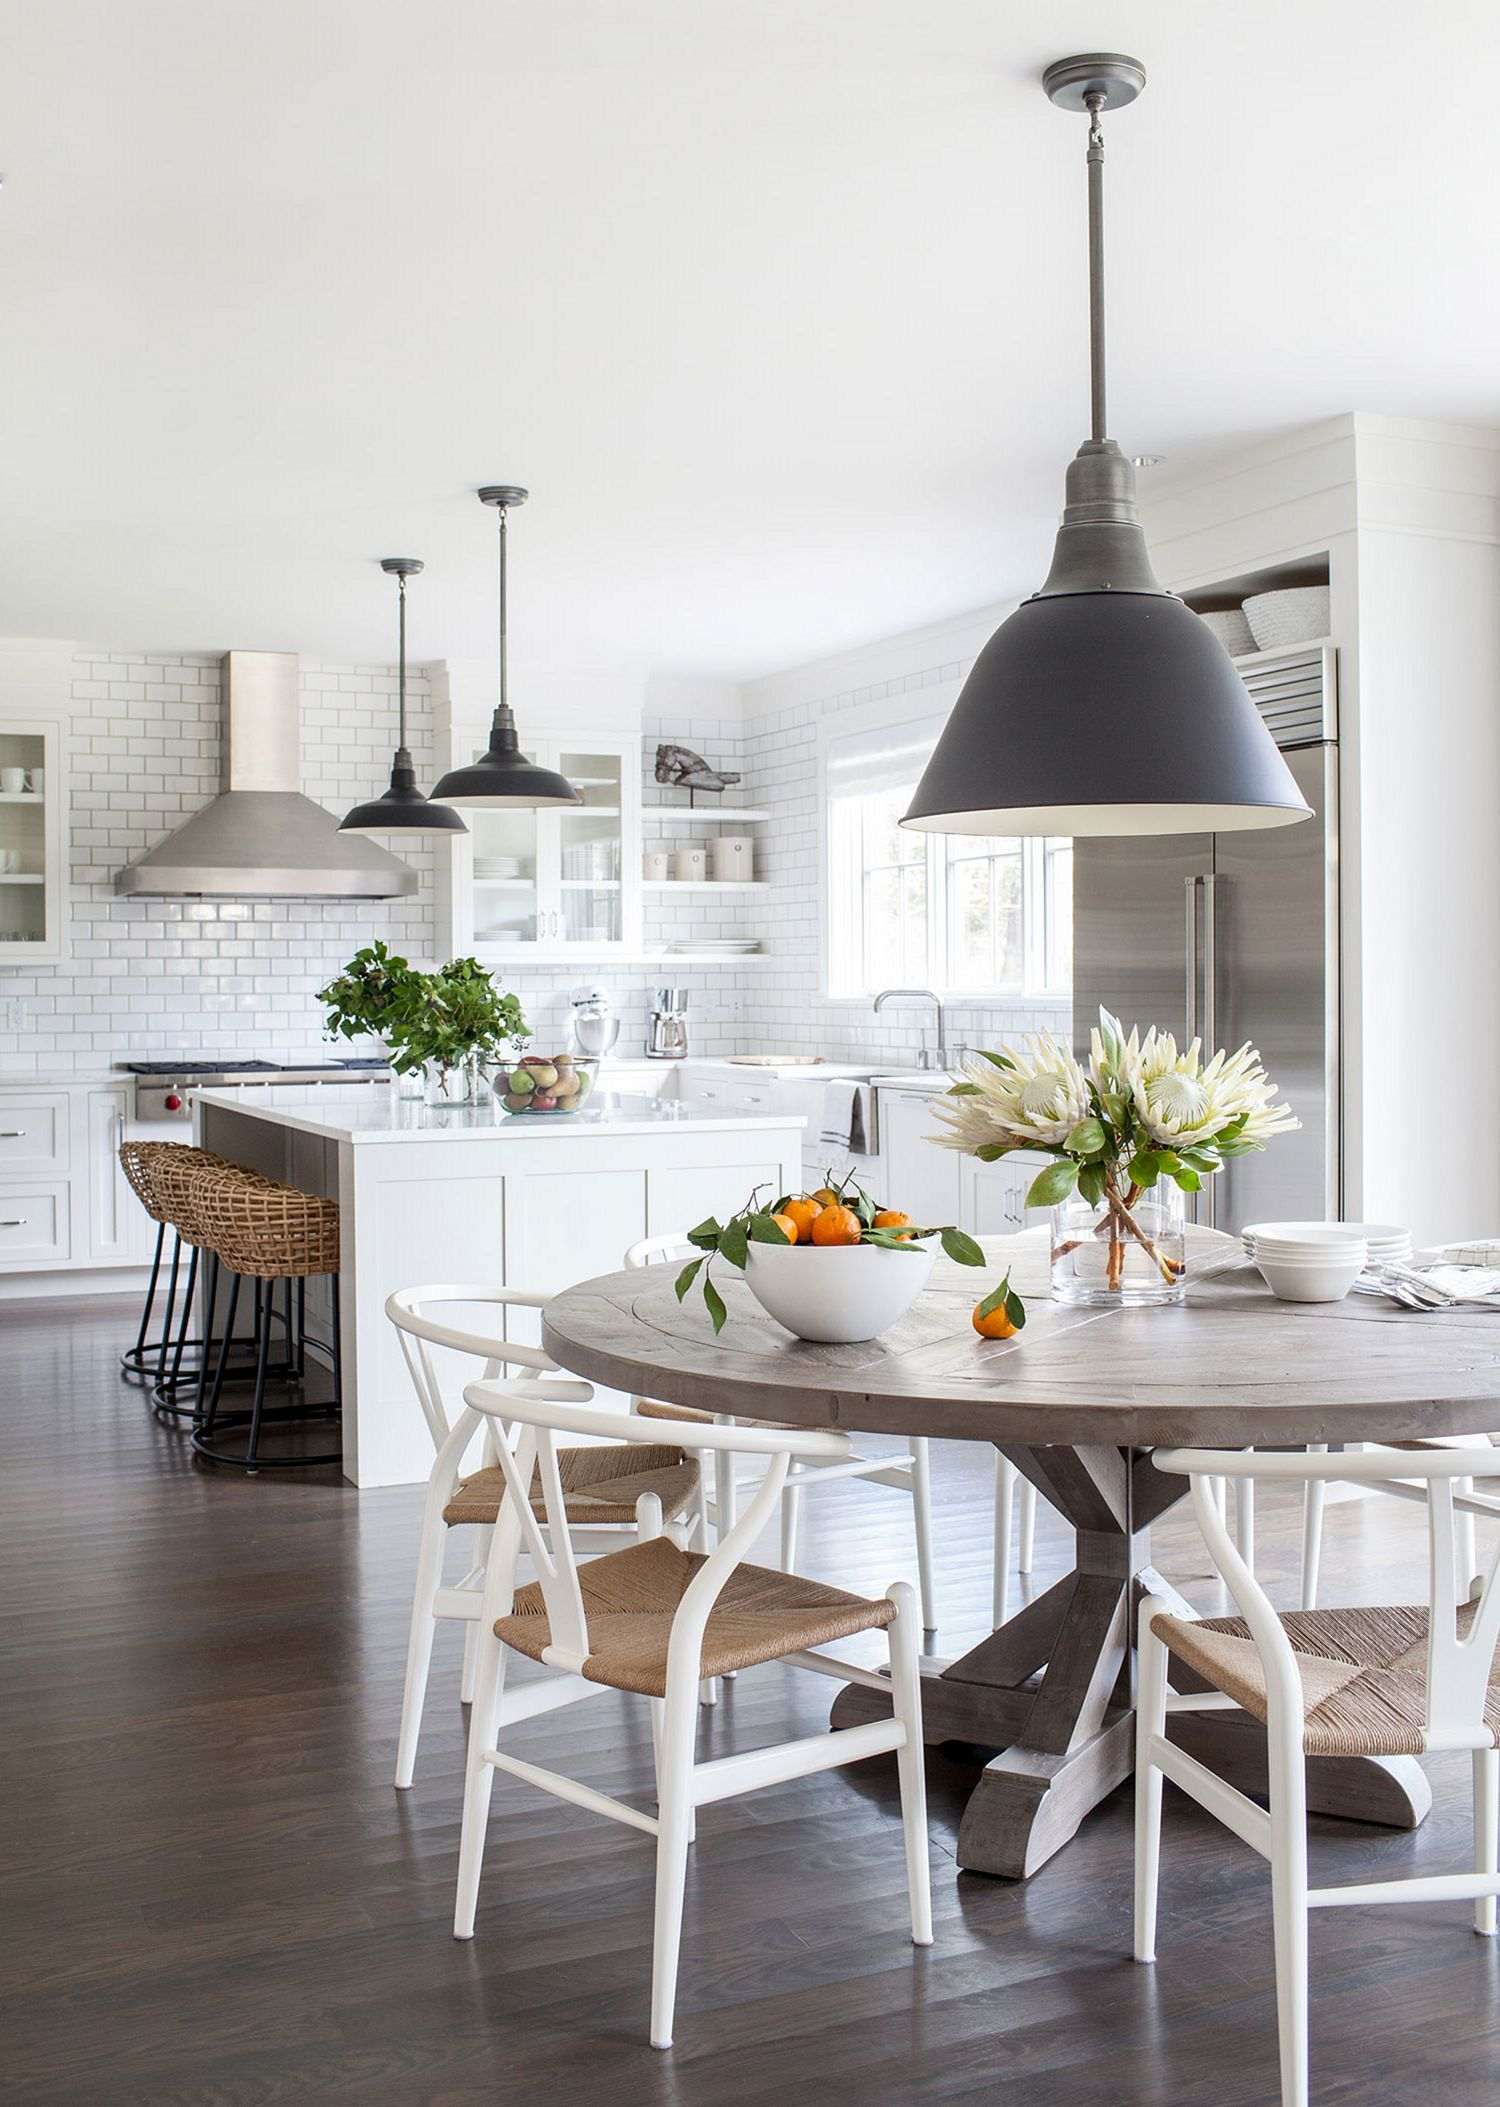 Top 75 Simple And Minimalist Dining Table Decor Ideas Http Goodsgn Com Kitchen 75 Simple And Minimalist Dining T Kitchen Design Home Kitchens Kitchen Remodel